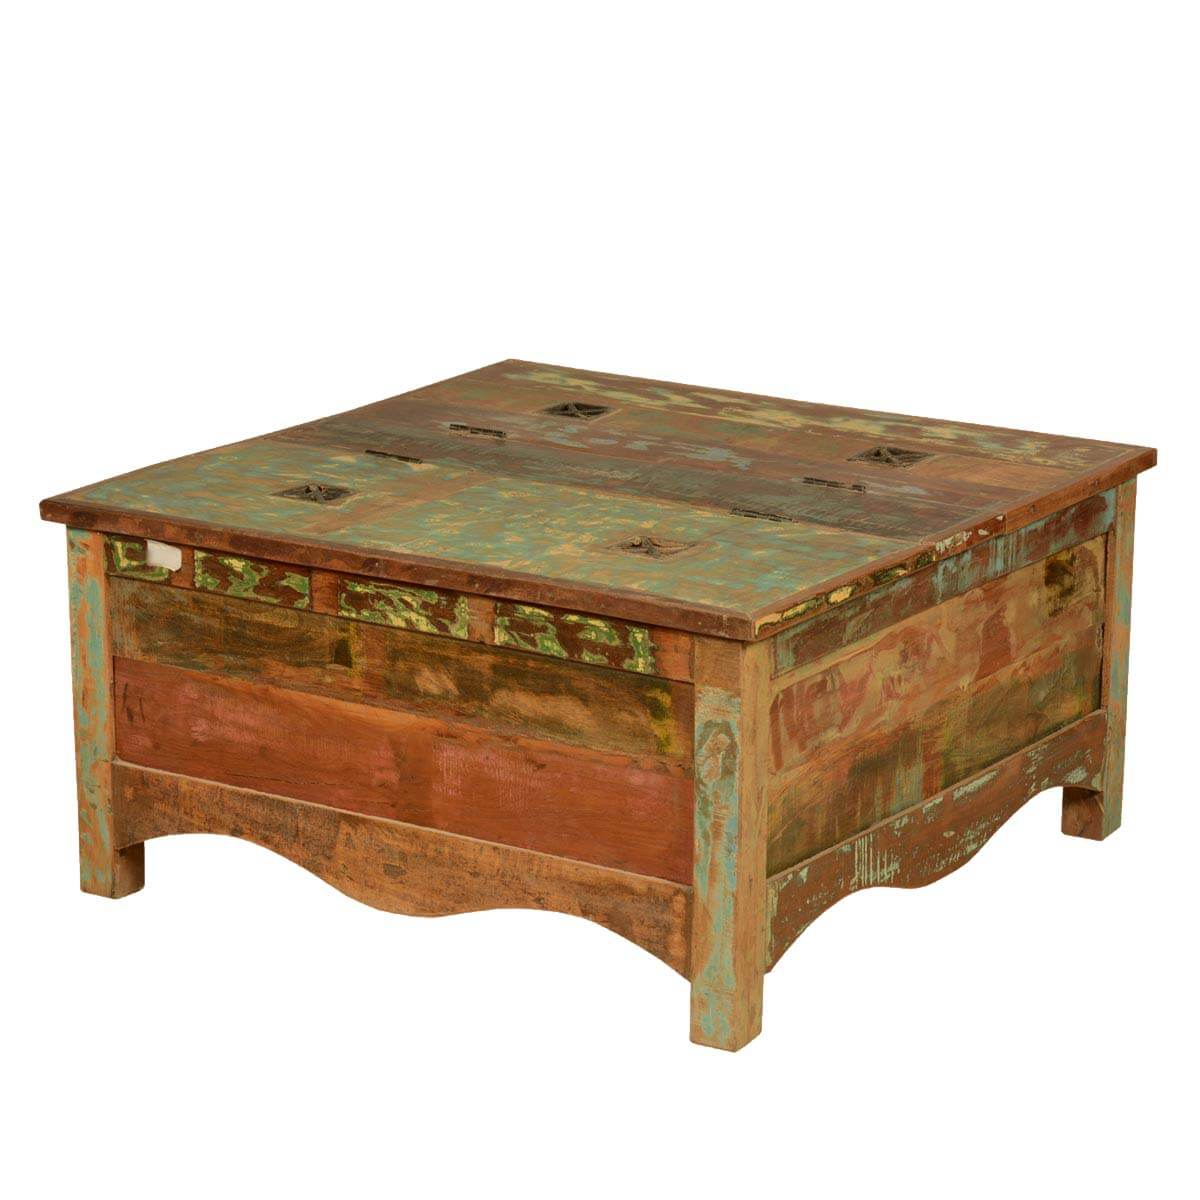 Boelus Rustic Reclaimed Wood Square Double Top Coffee Table Chest